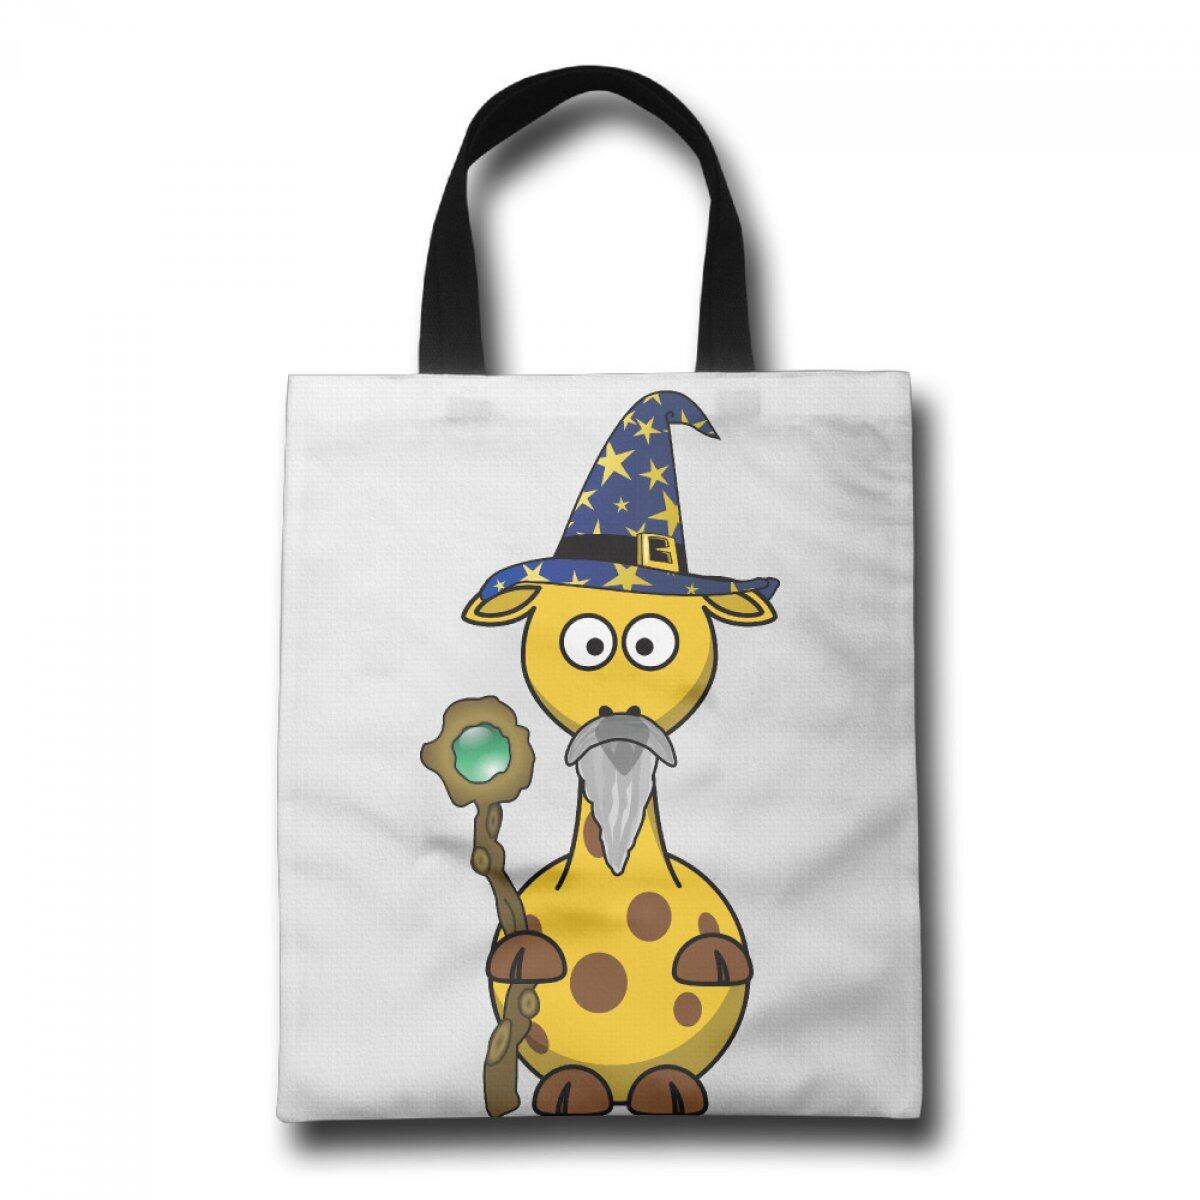 PhoRock Ladies Tote Bag Old Giraffe Printed Canvas Beach Tote GWJB008 0